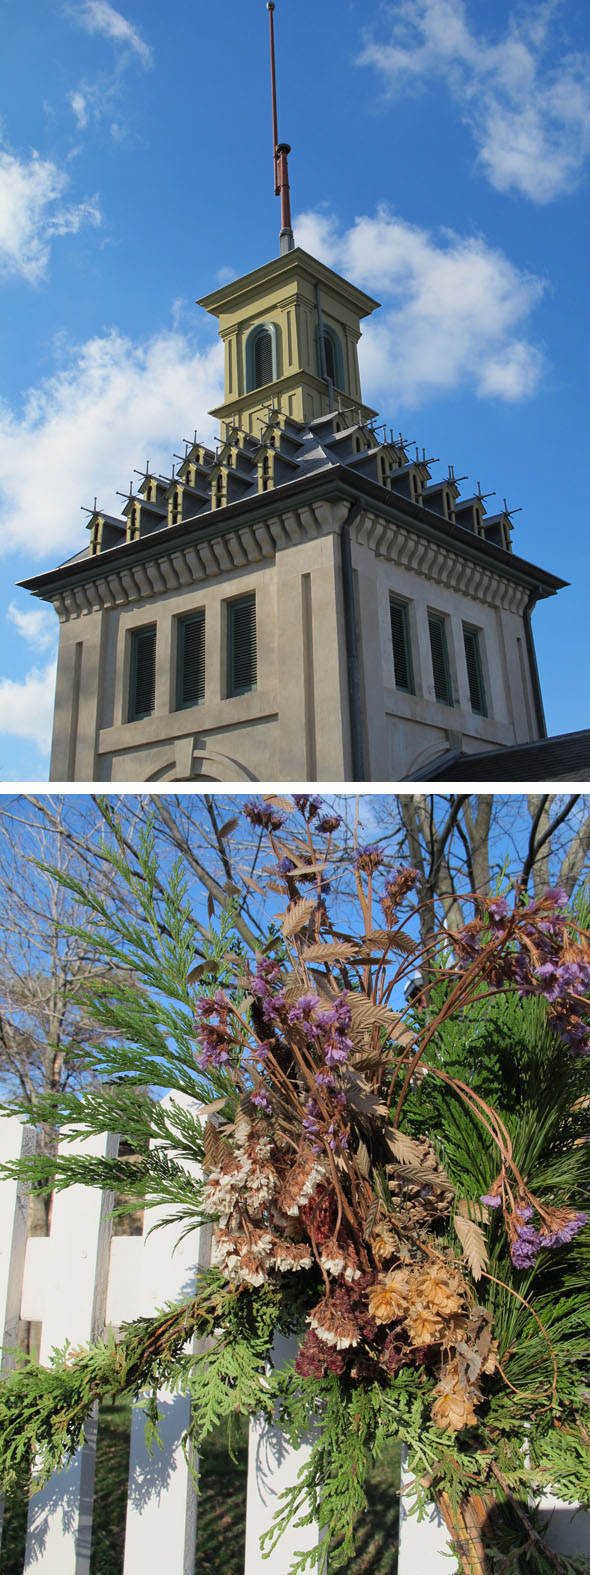 Dundurn castle bird aviary, pigeon home, Hamilton, Victorian Christmas decorations, cedar boughs, dried flowers